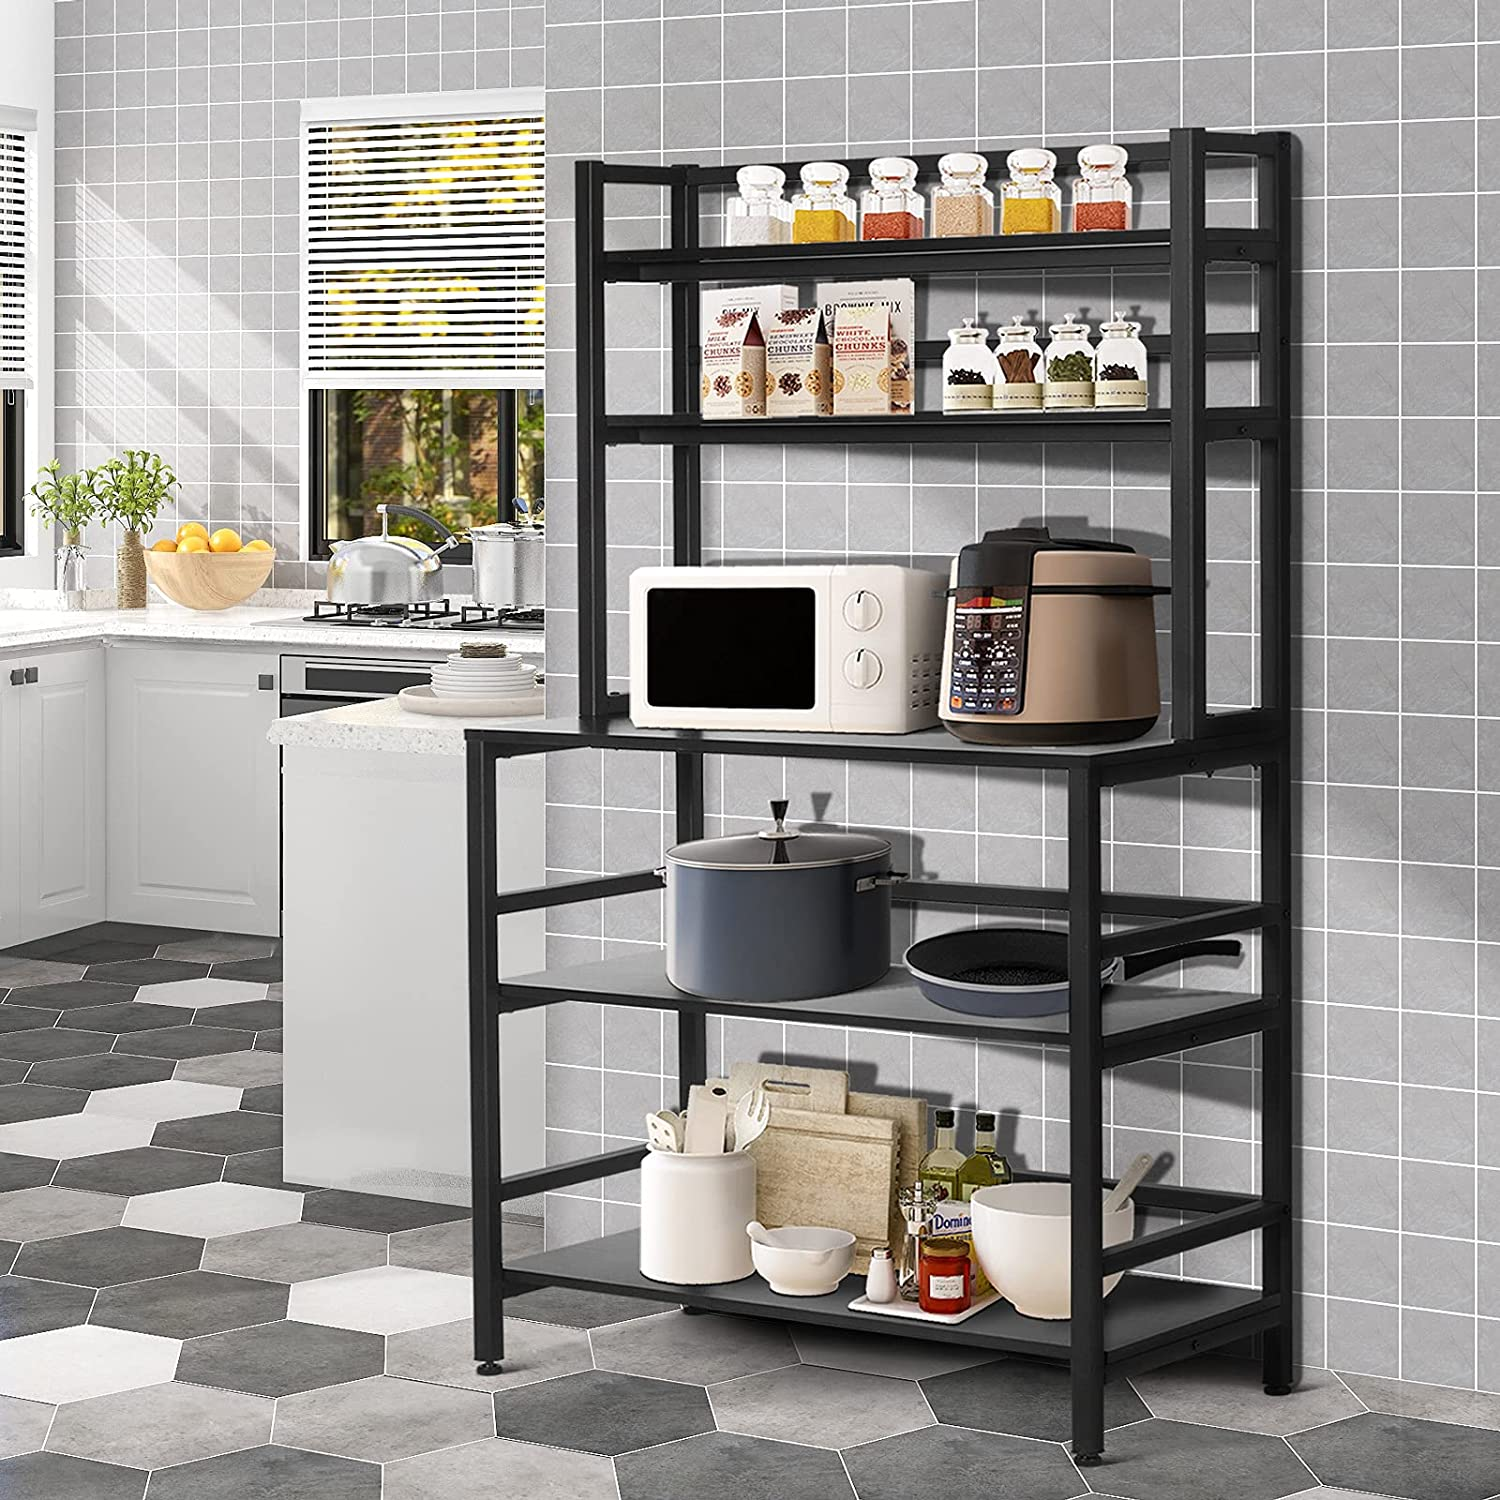 YGBH Ranking TOP20 5-Tier Kitchen Bakers Rack Hutch Coffee Micr with NEW before selling Station